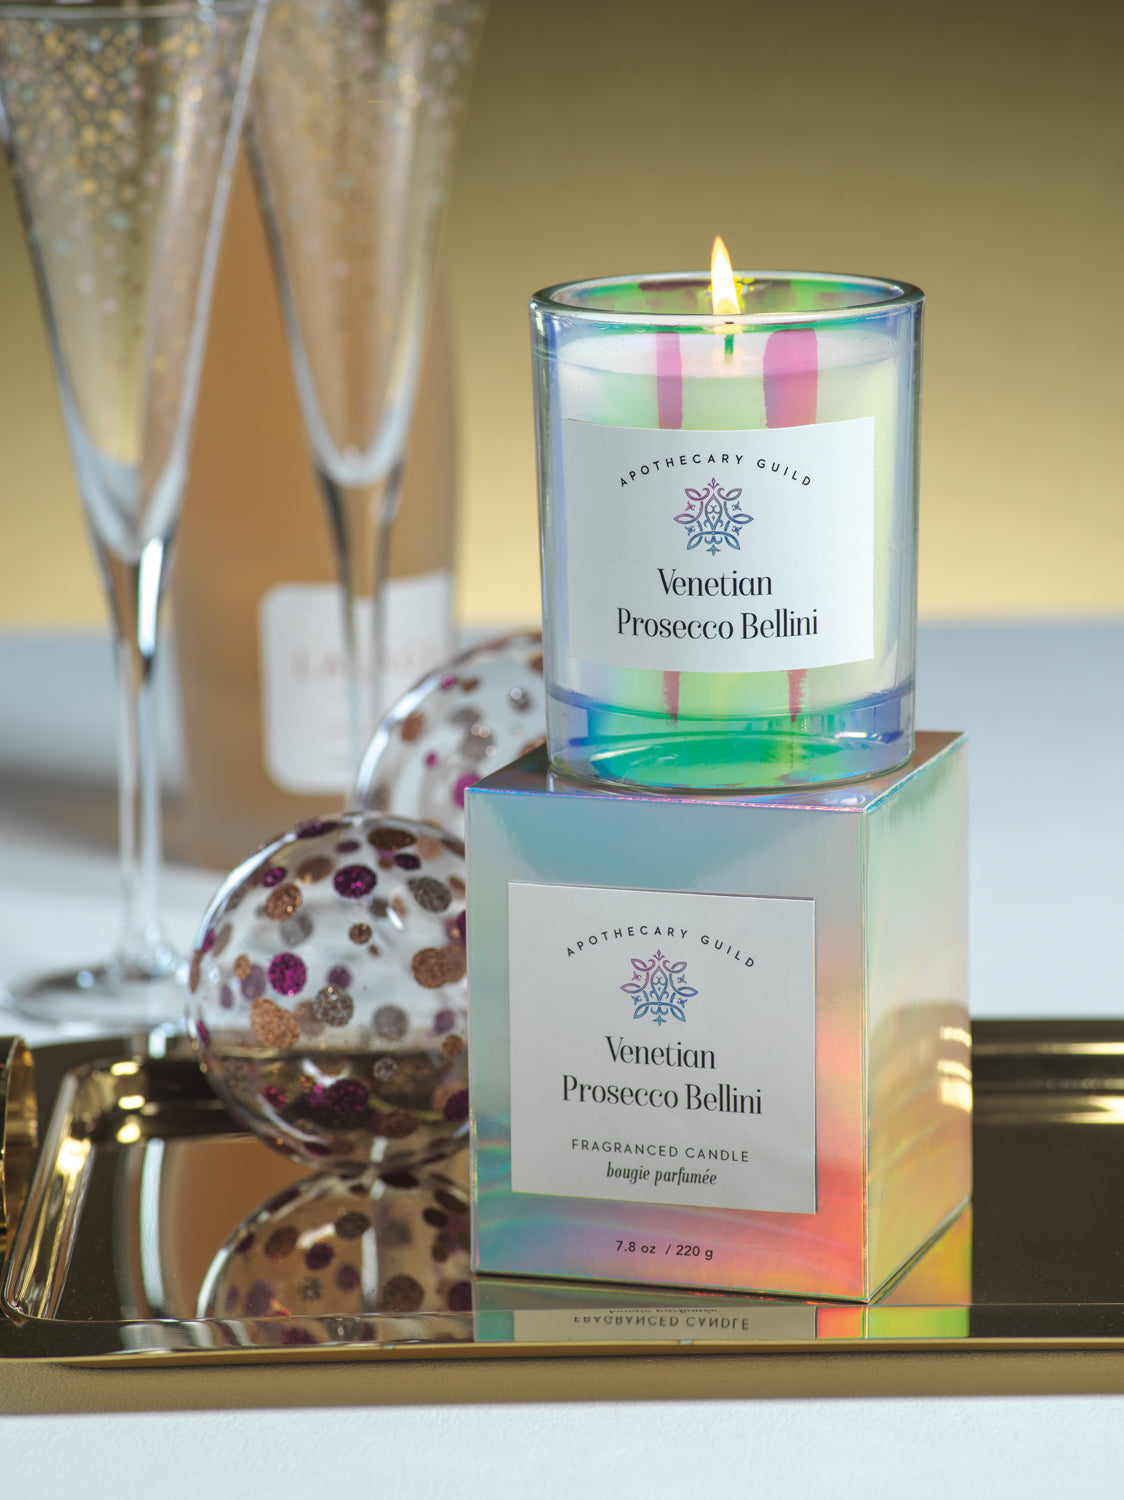 Apothecary Guild Iridescent Candle